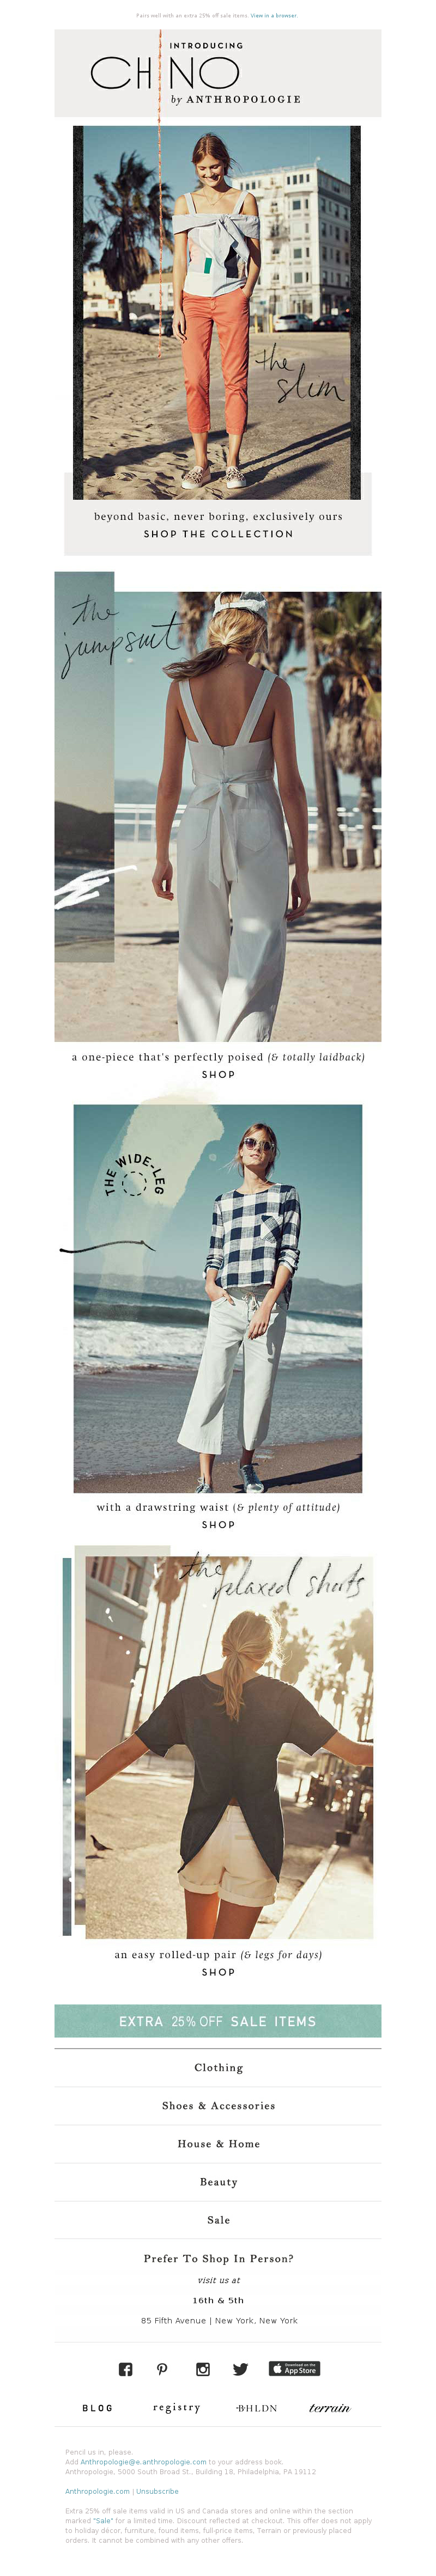 Anthropologie - Introducing: CHINO by Anthropologie.